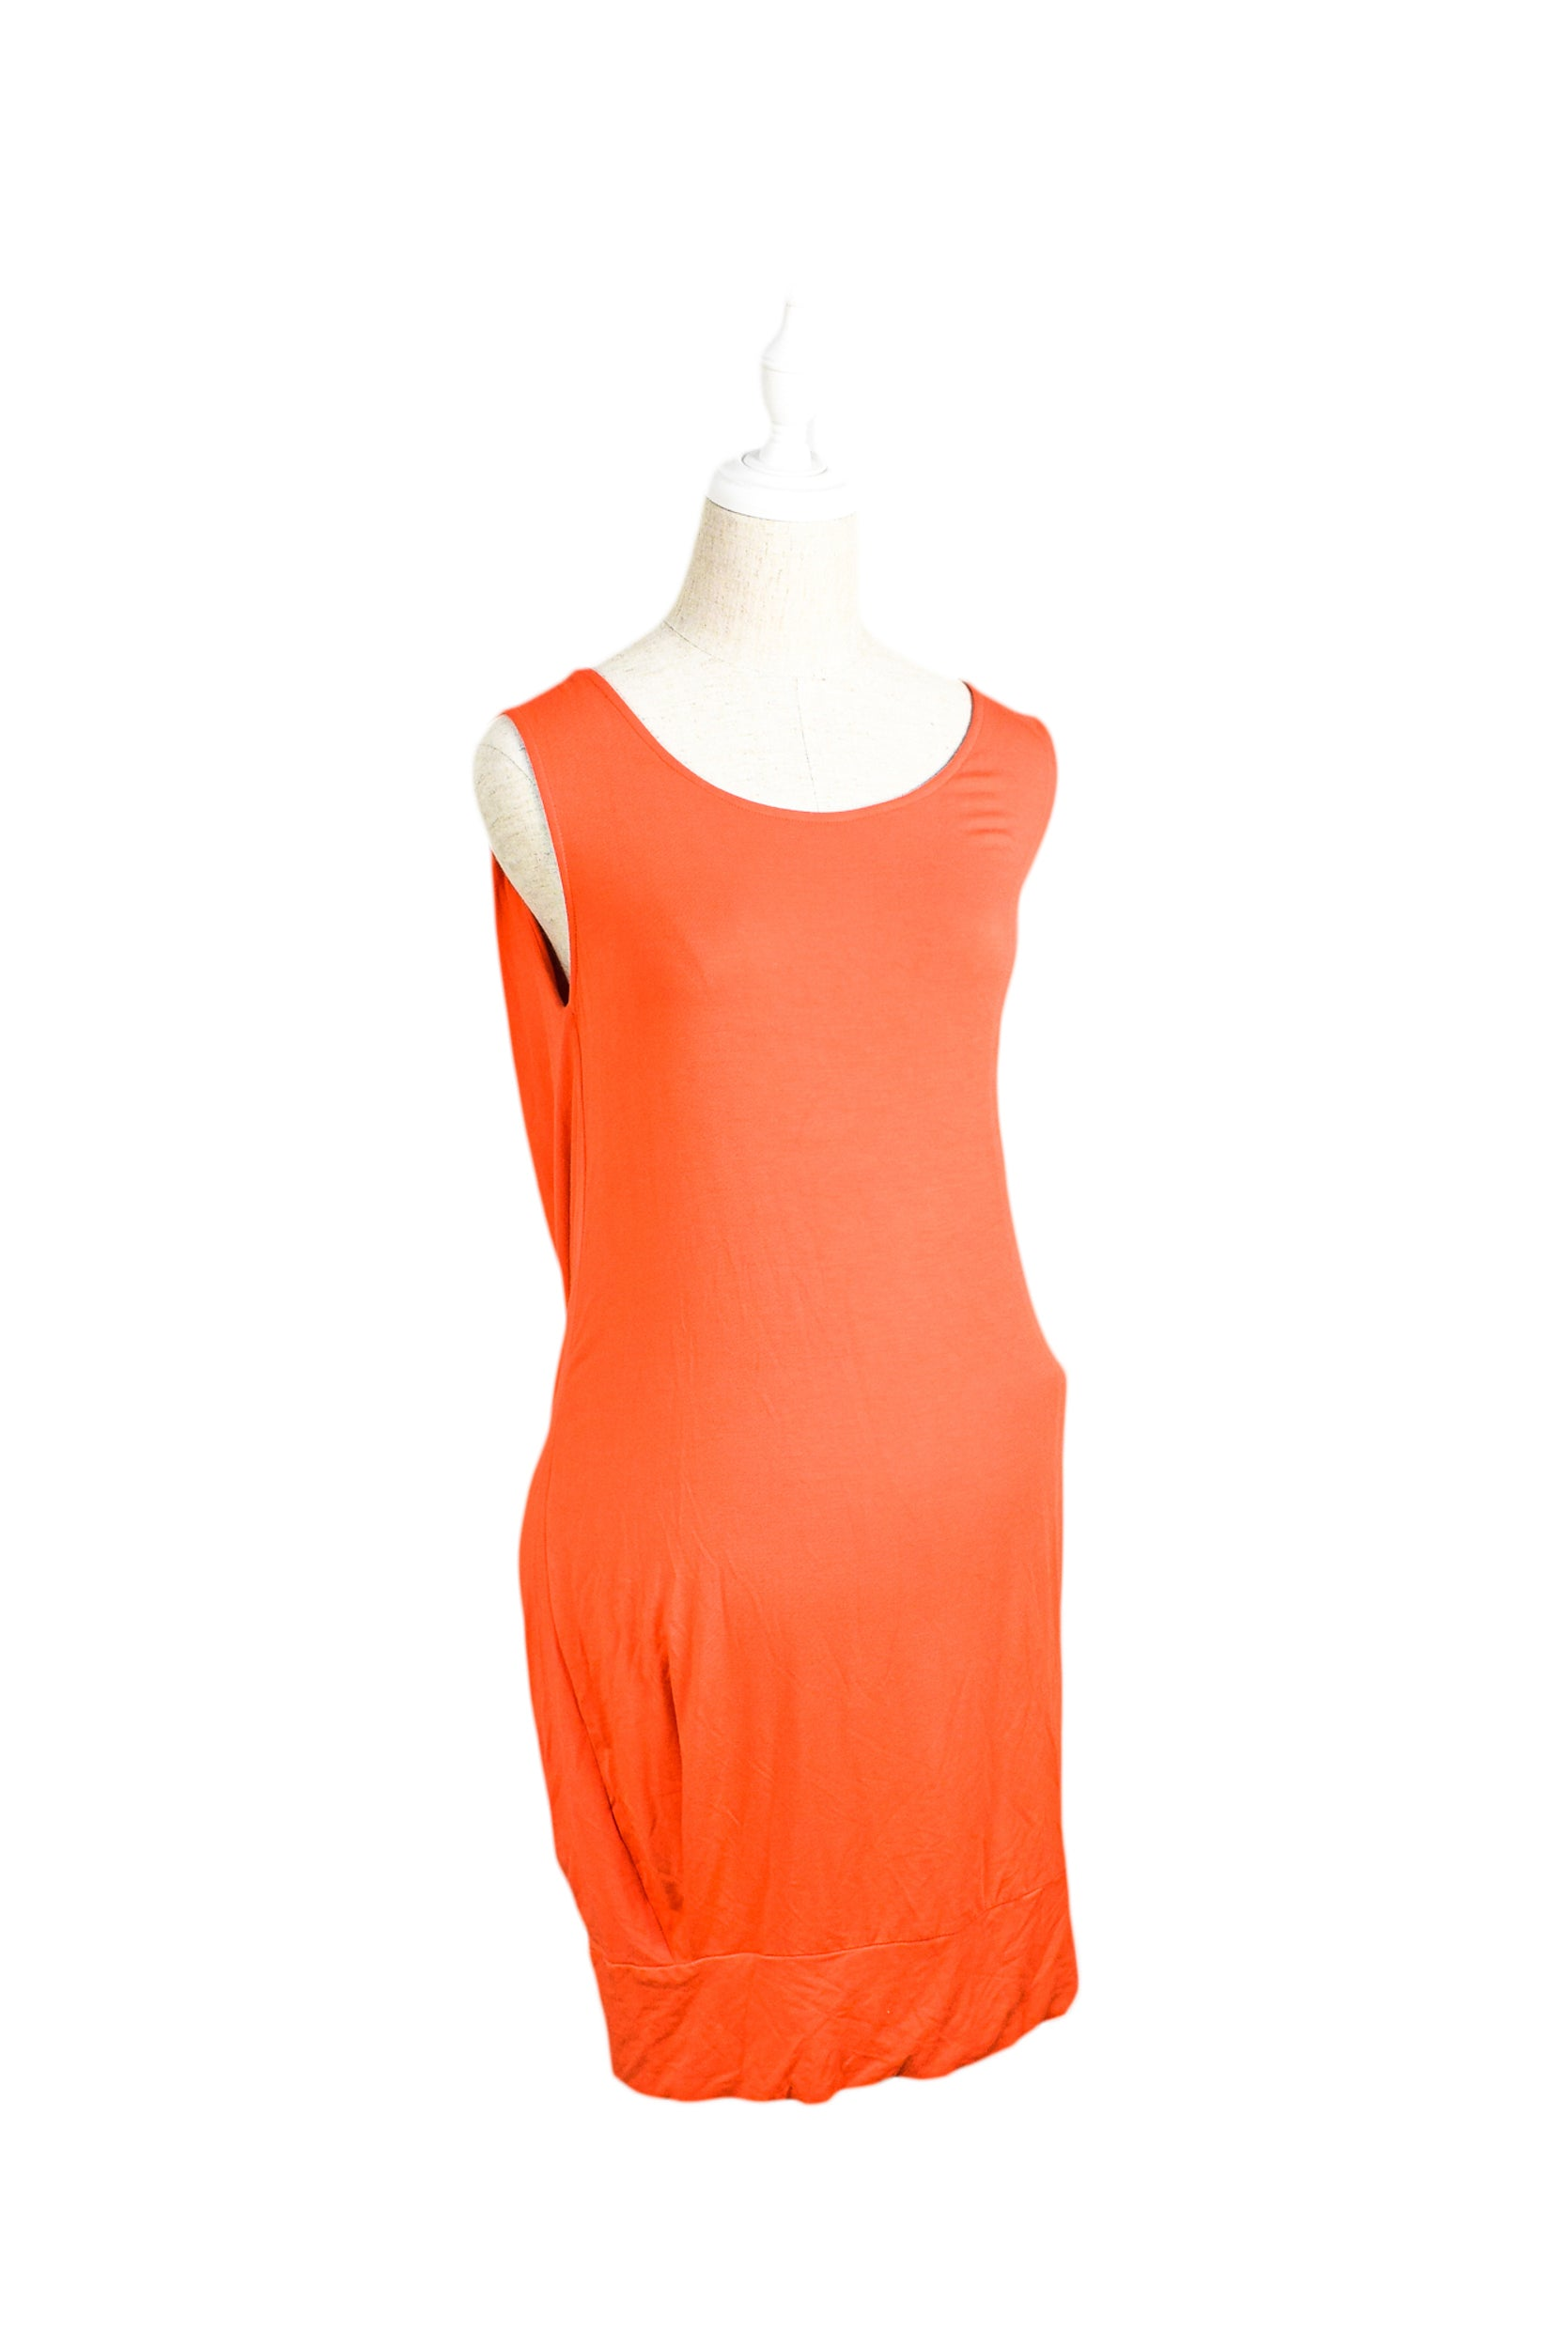 Maternity Sleeveless Dress M (US 8-10) at Retykle